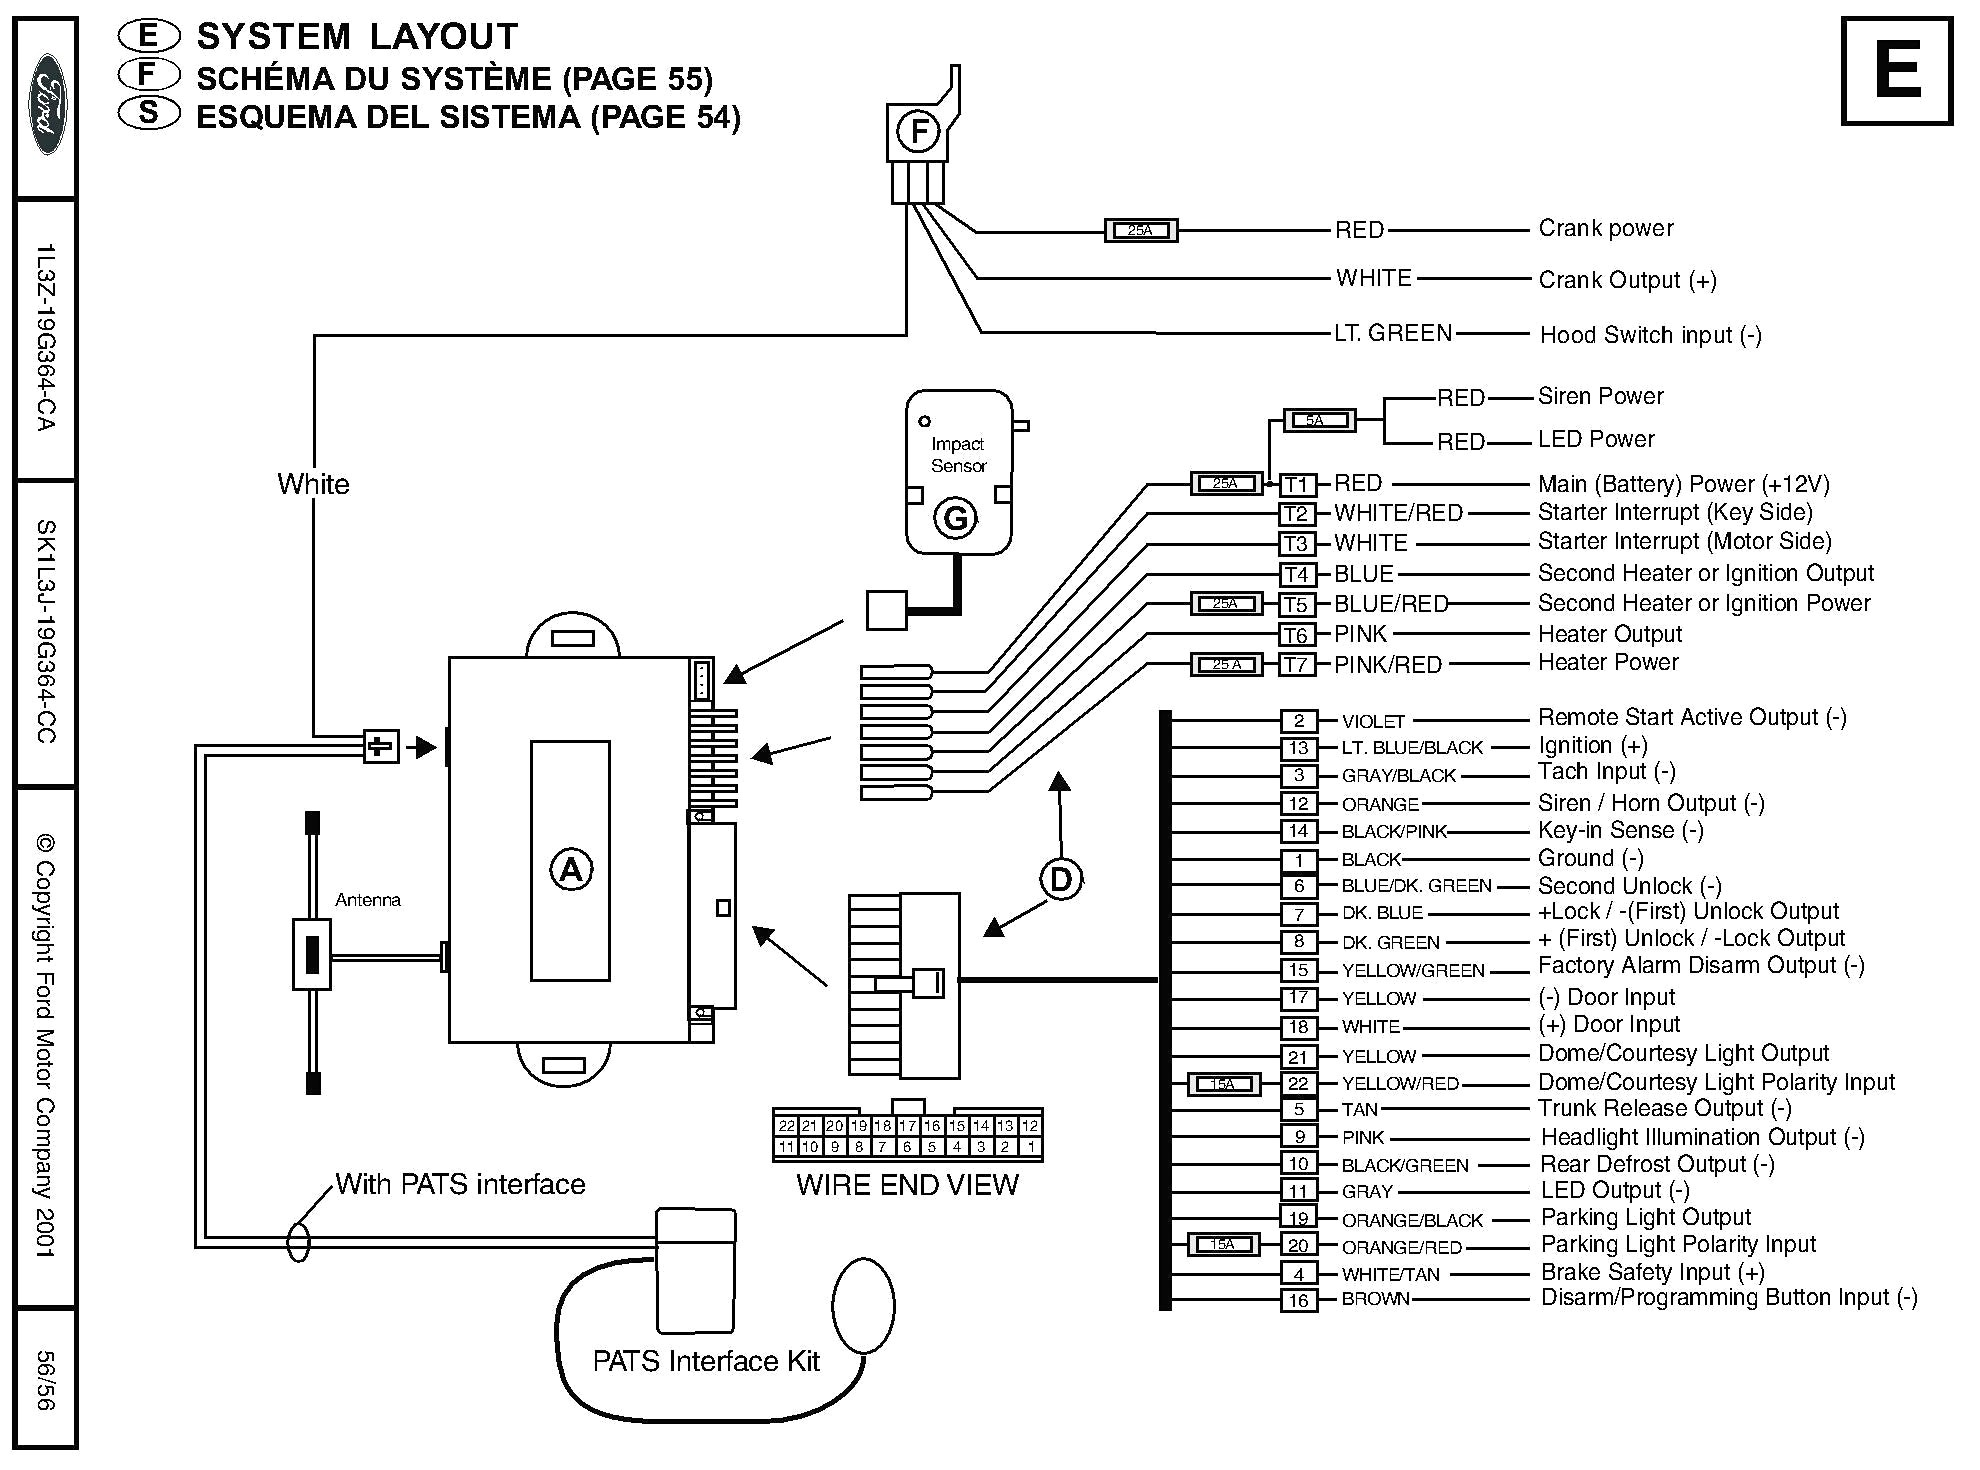 Diagram Of Car Heating System Bulldog Security Wiring Diagrams and Mesmerizing Car Alarm Diagram